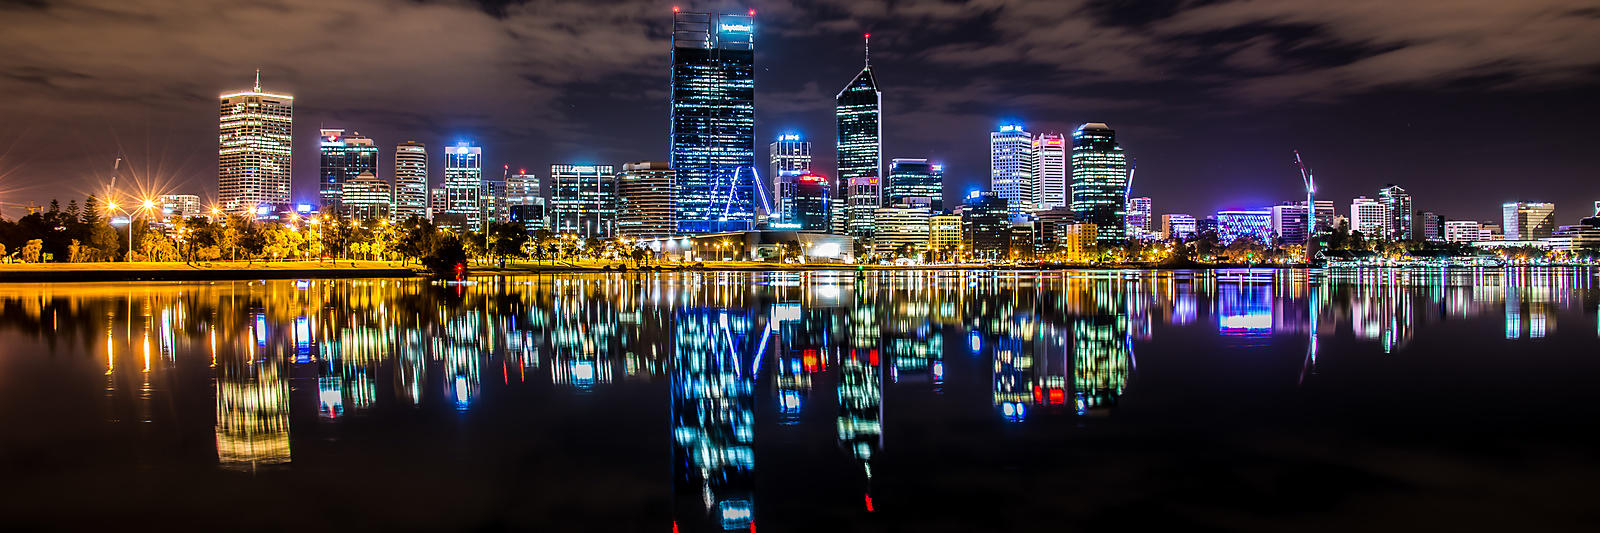 SDP-300414-perth_city-10-2-HR